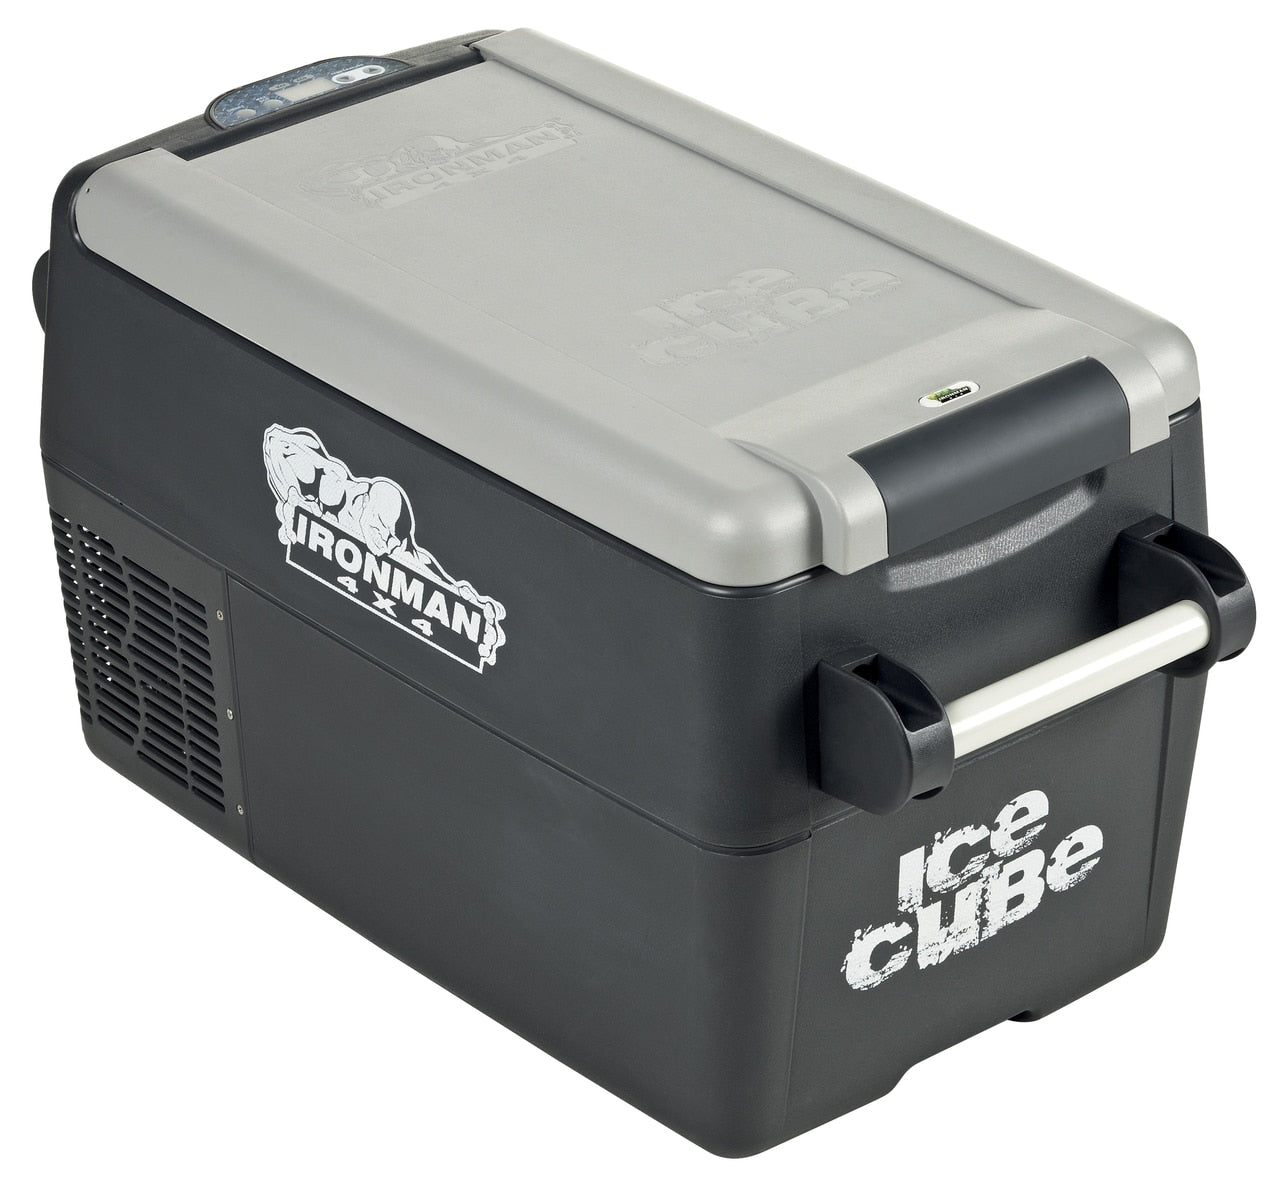 ICECUBE FRIDGE/FREEZER 30L (32 QUARTS) - 4x4 Runners